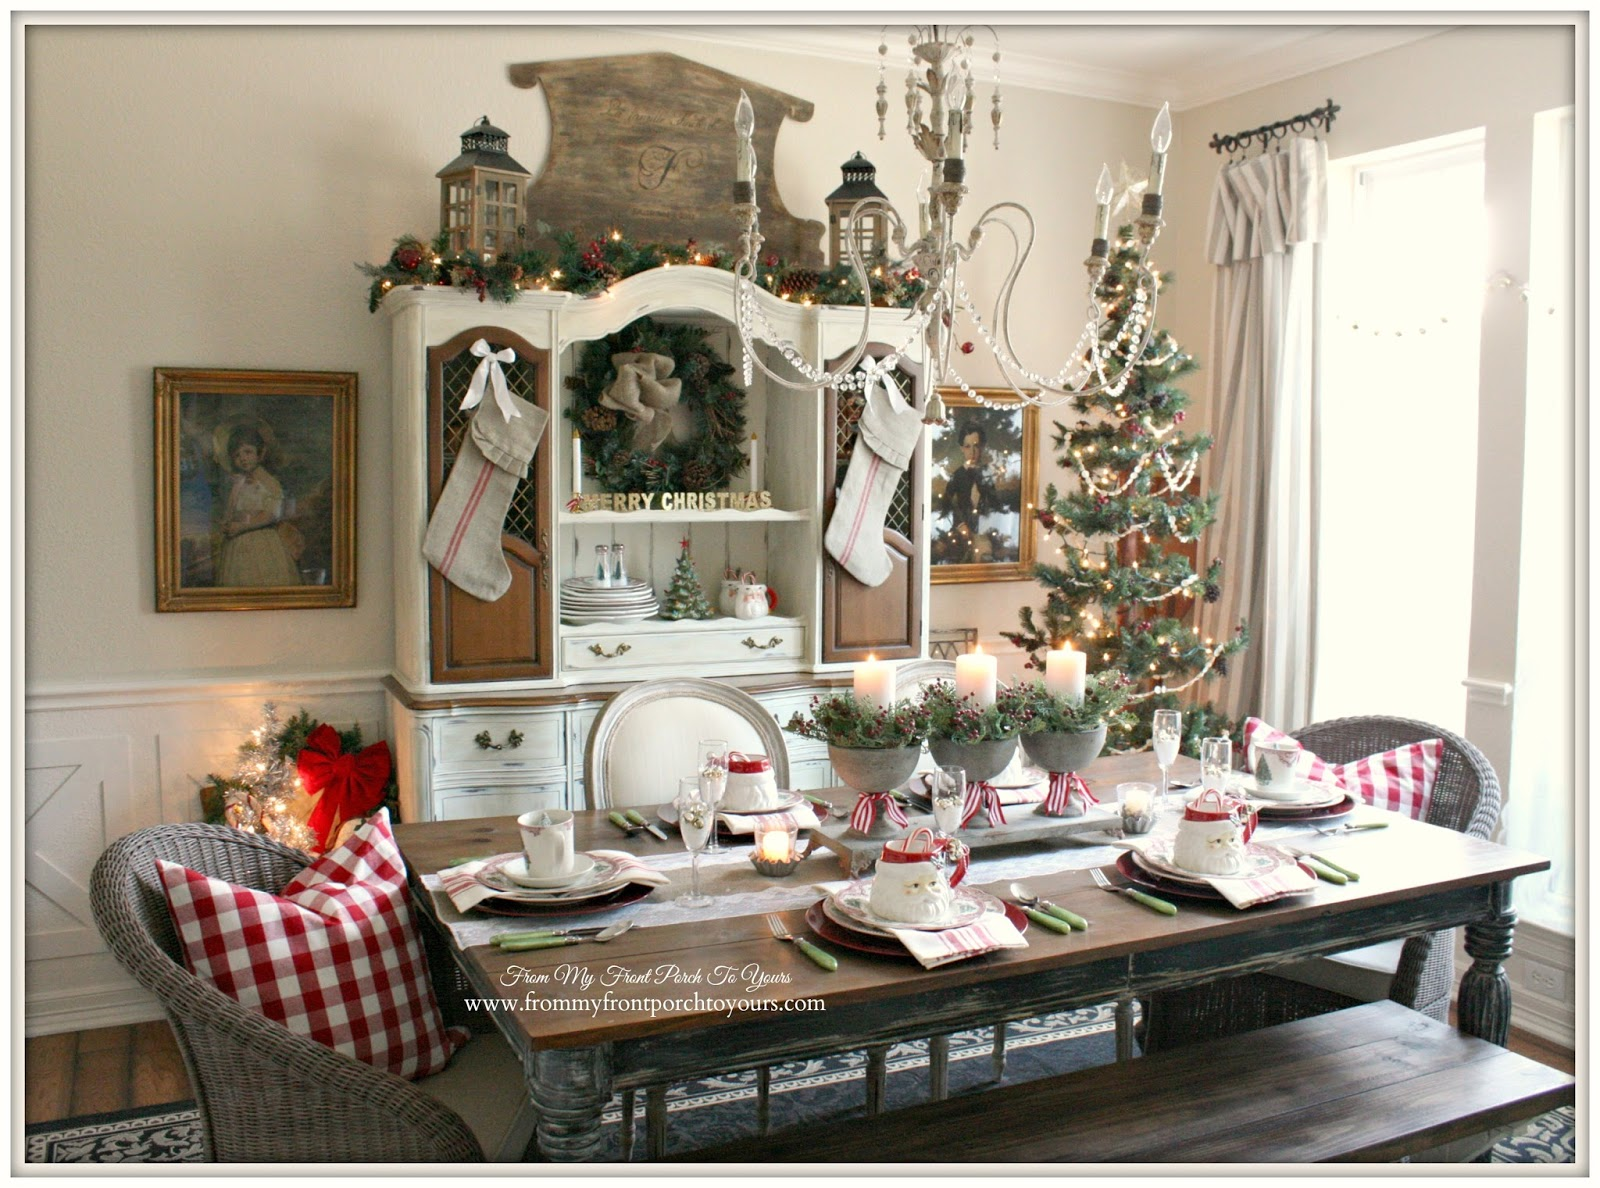 French Country Christmas Decorating Ideas: From My Front Porch To Yours: Christmas Dining Room Thru